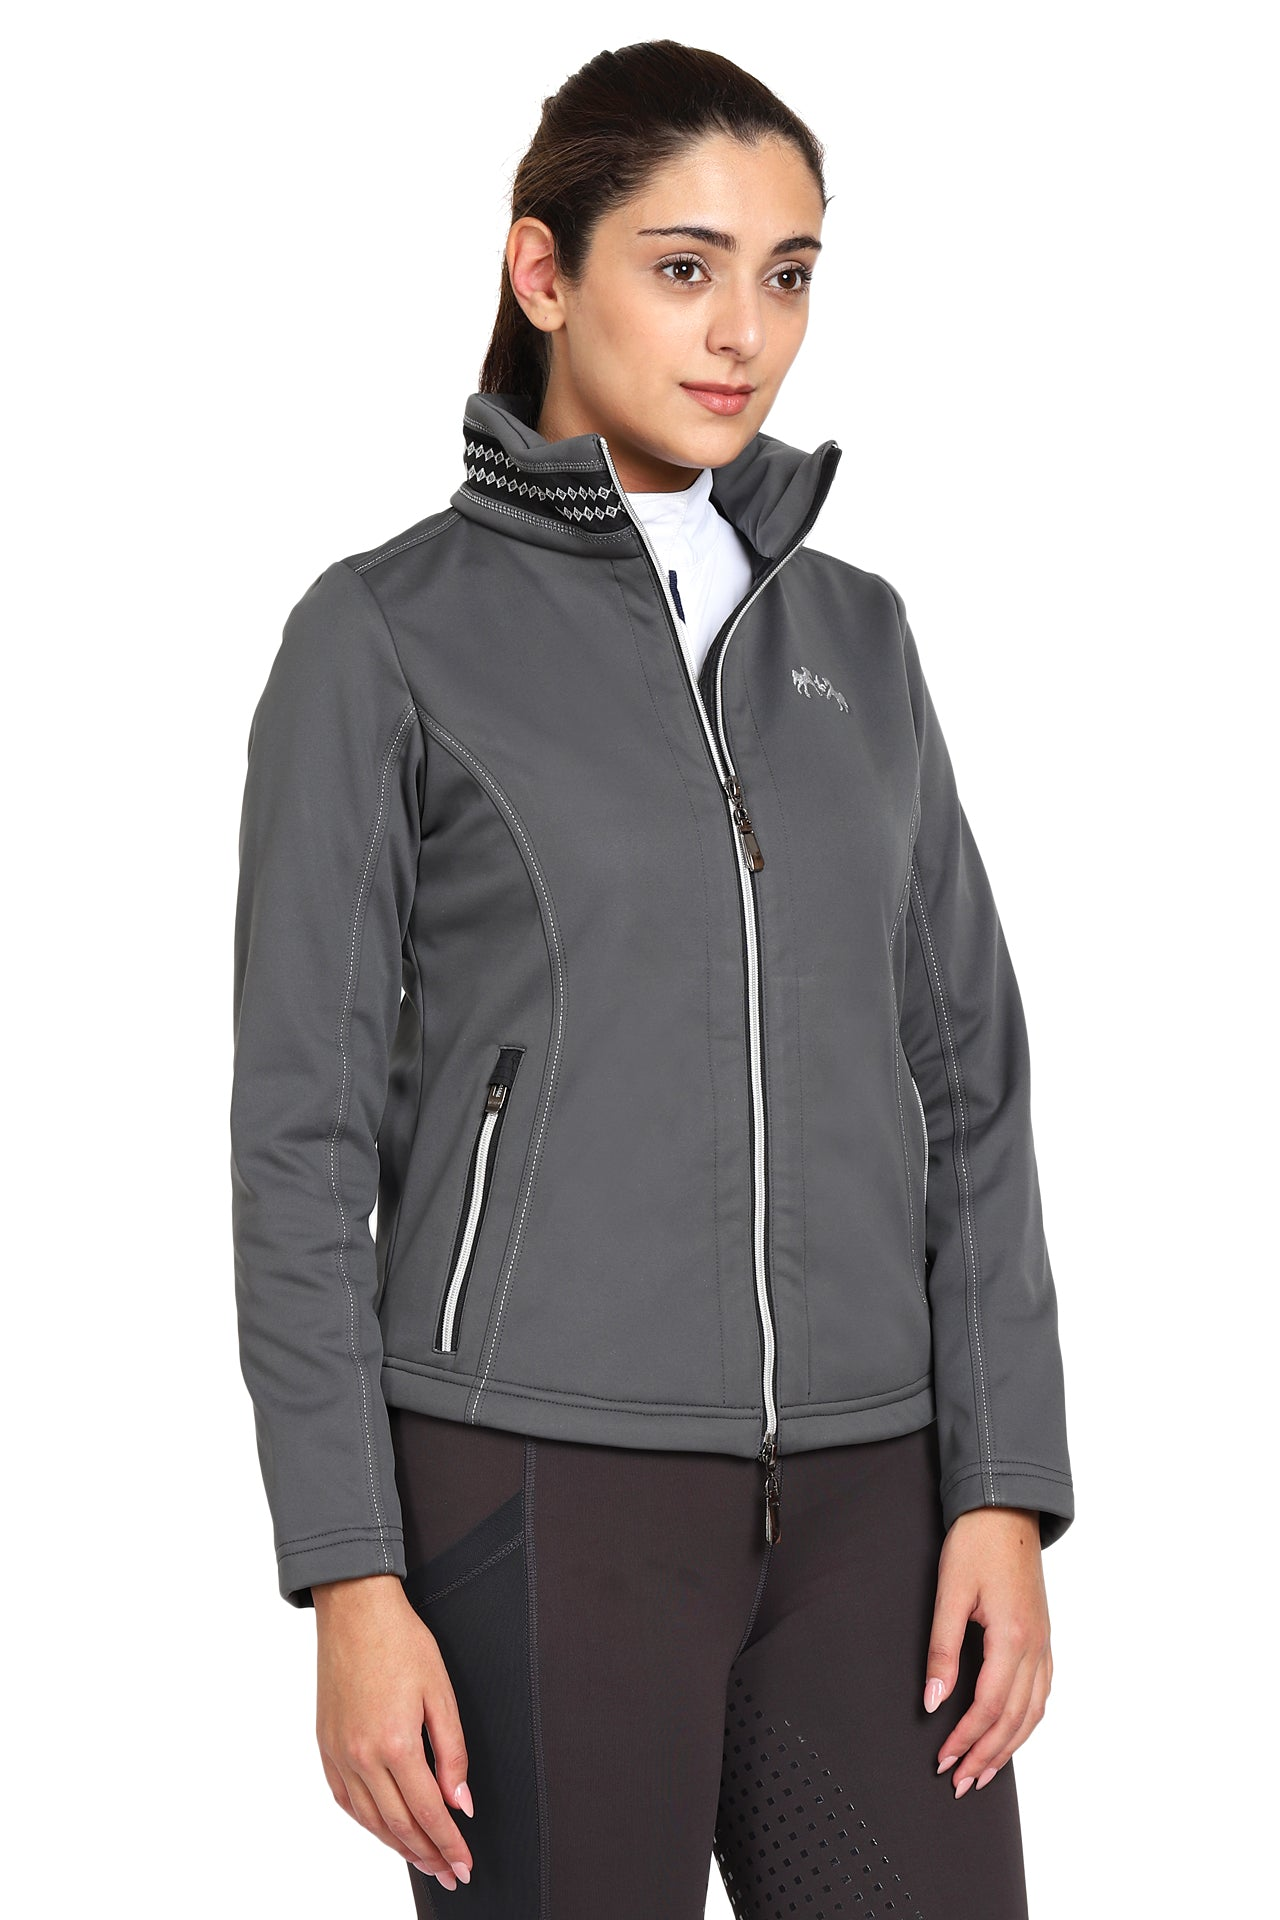 EQUINE COUTURE LADIES BECCA SOFT SHELL JACKET WITH FLEECE - Breeches.com